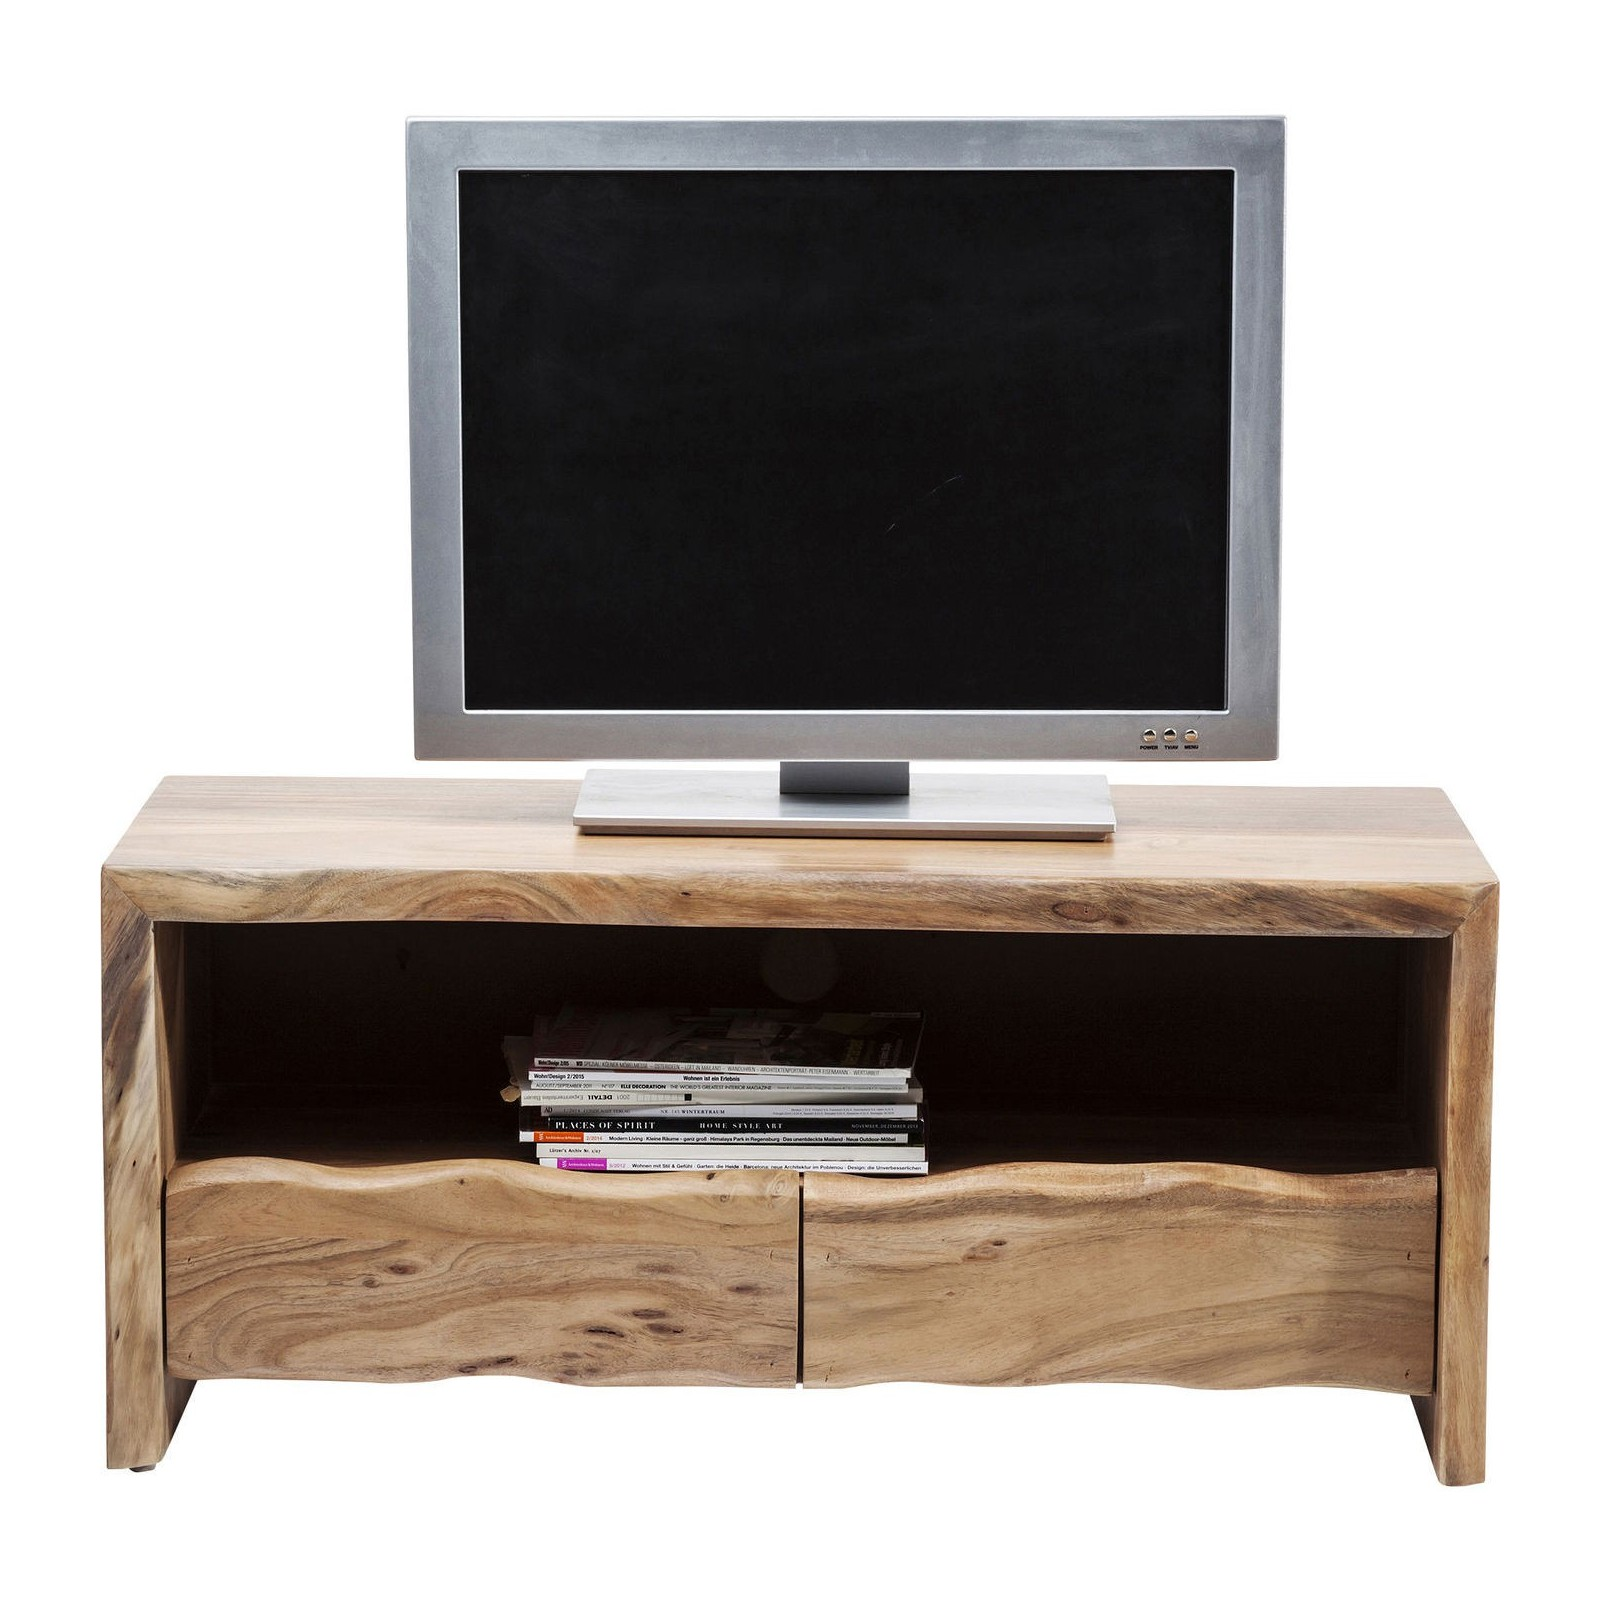 Meuble tv scandinave en bois pure nature kare design for Meuble tv bois 110 cm